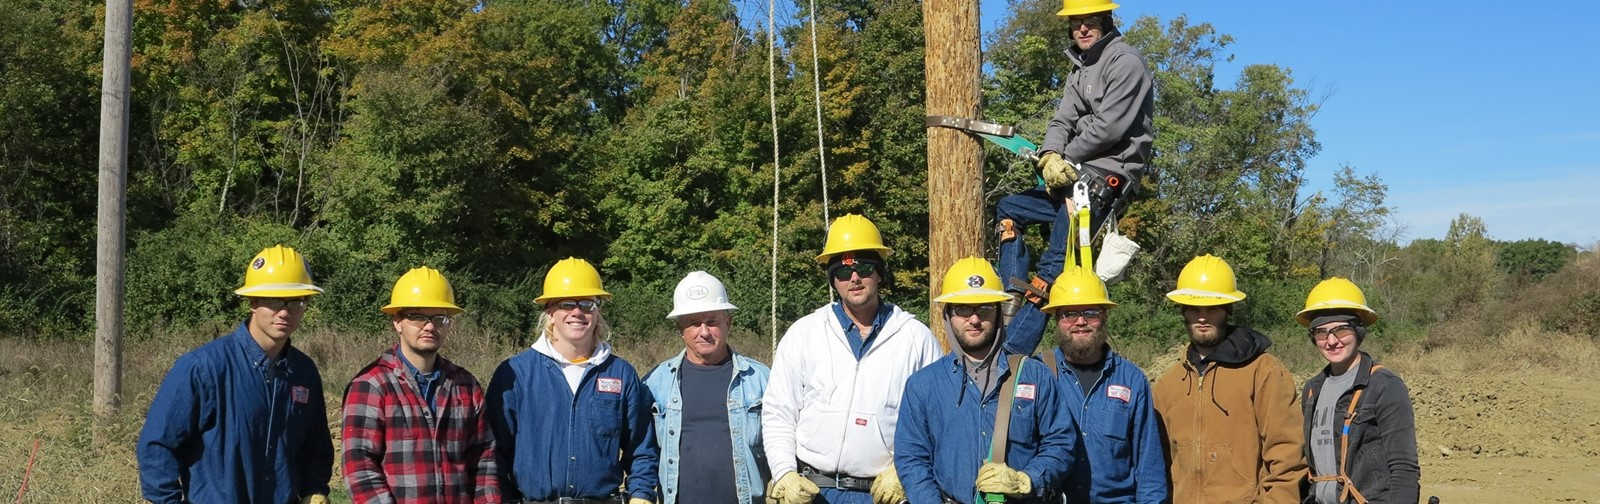 Electrical Power Line Mechanic class October 2018